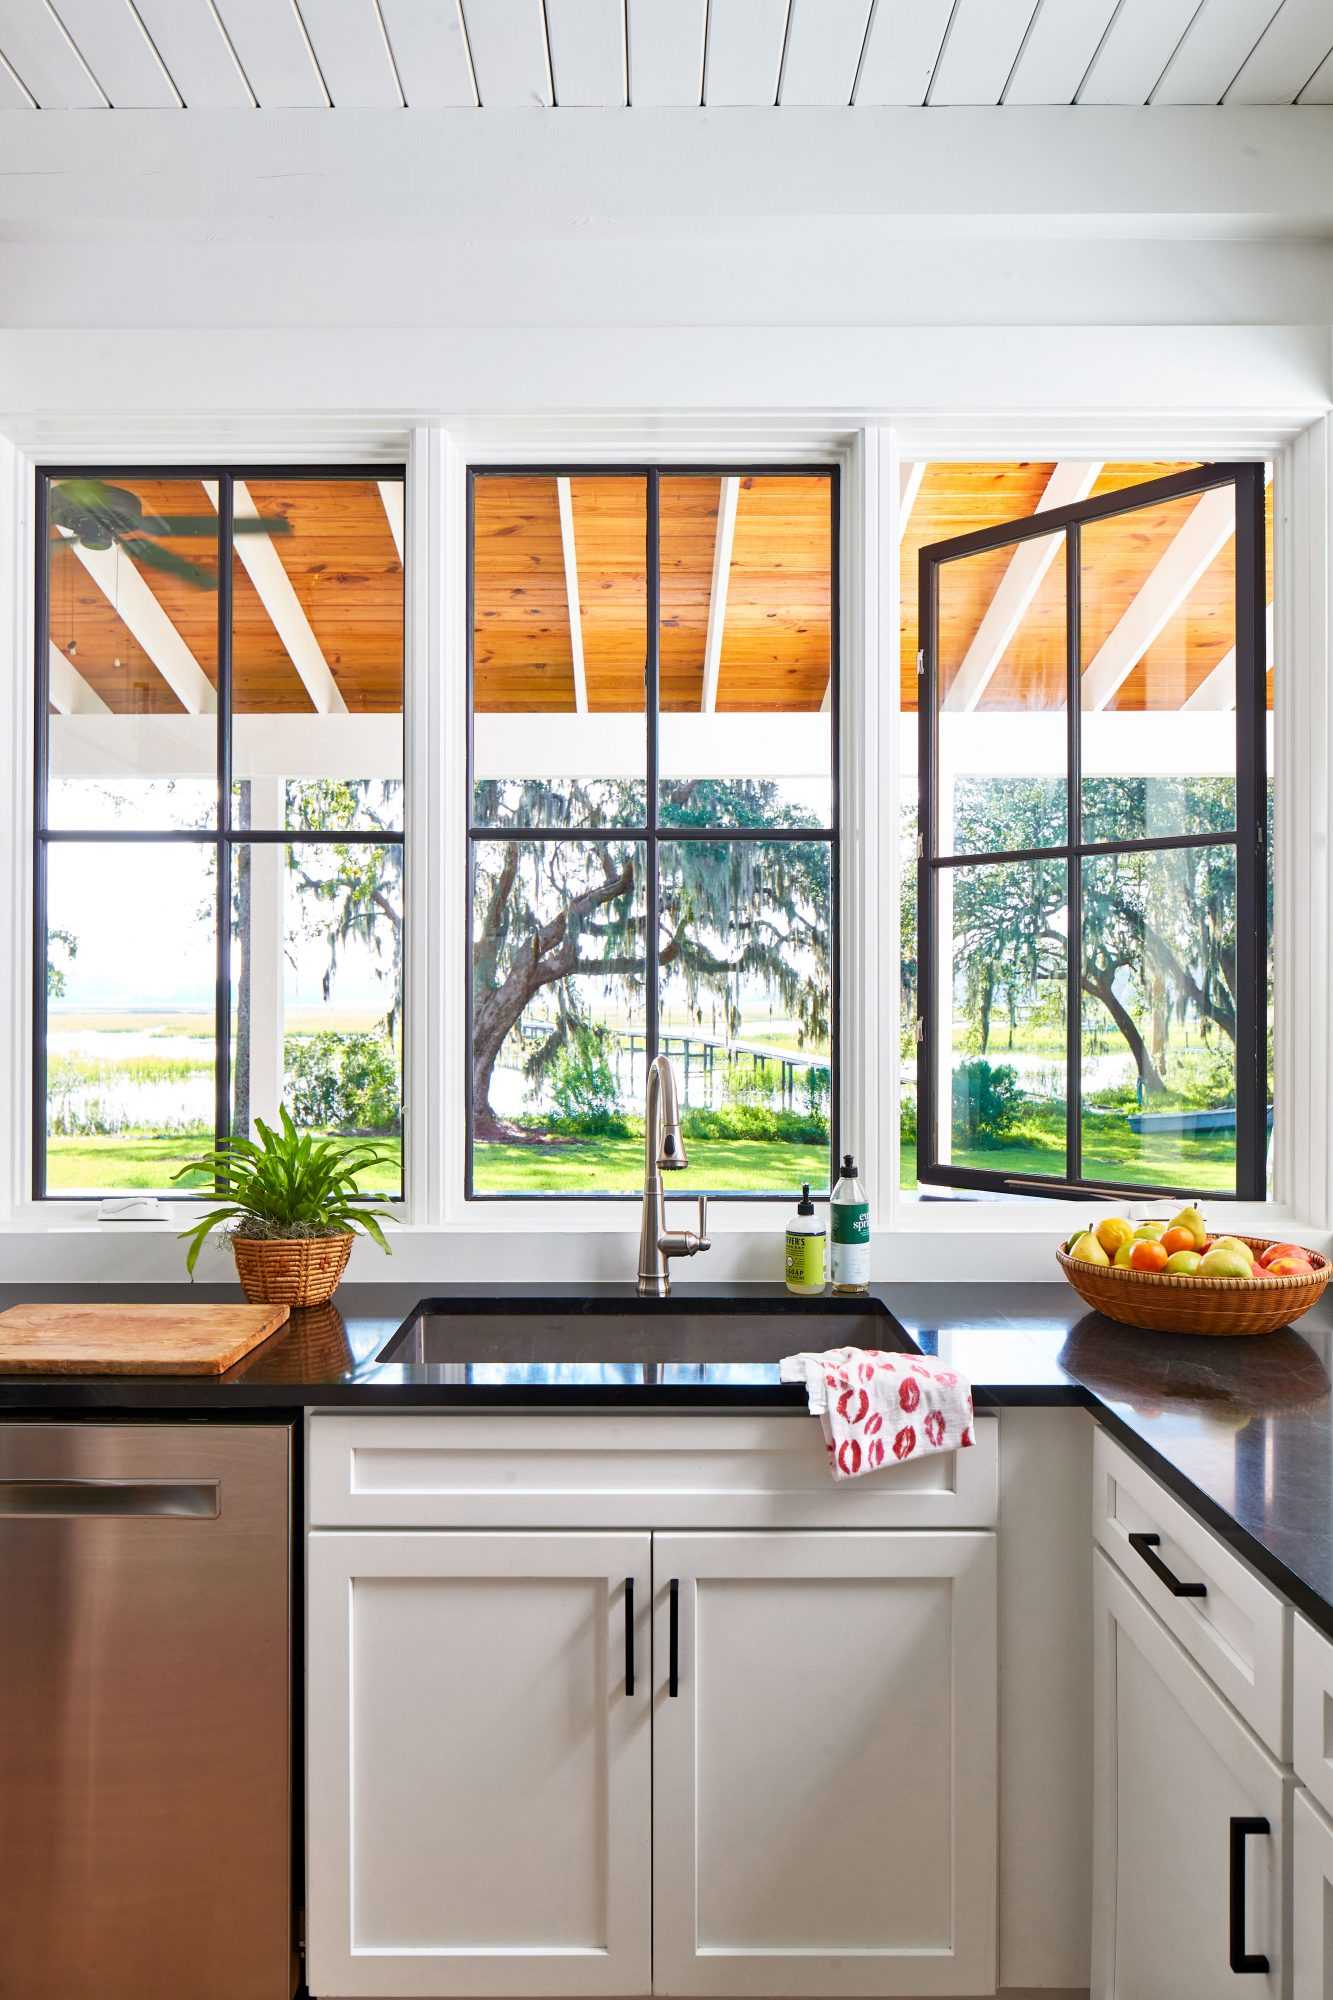 Watson Family Farmhouse in Savannah, GA Kitchen with Water View